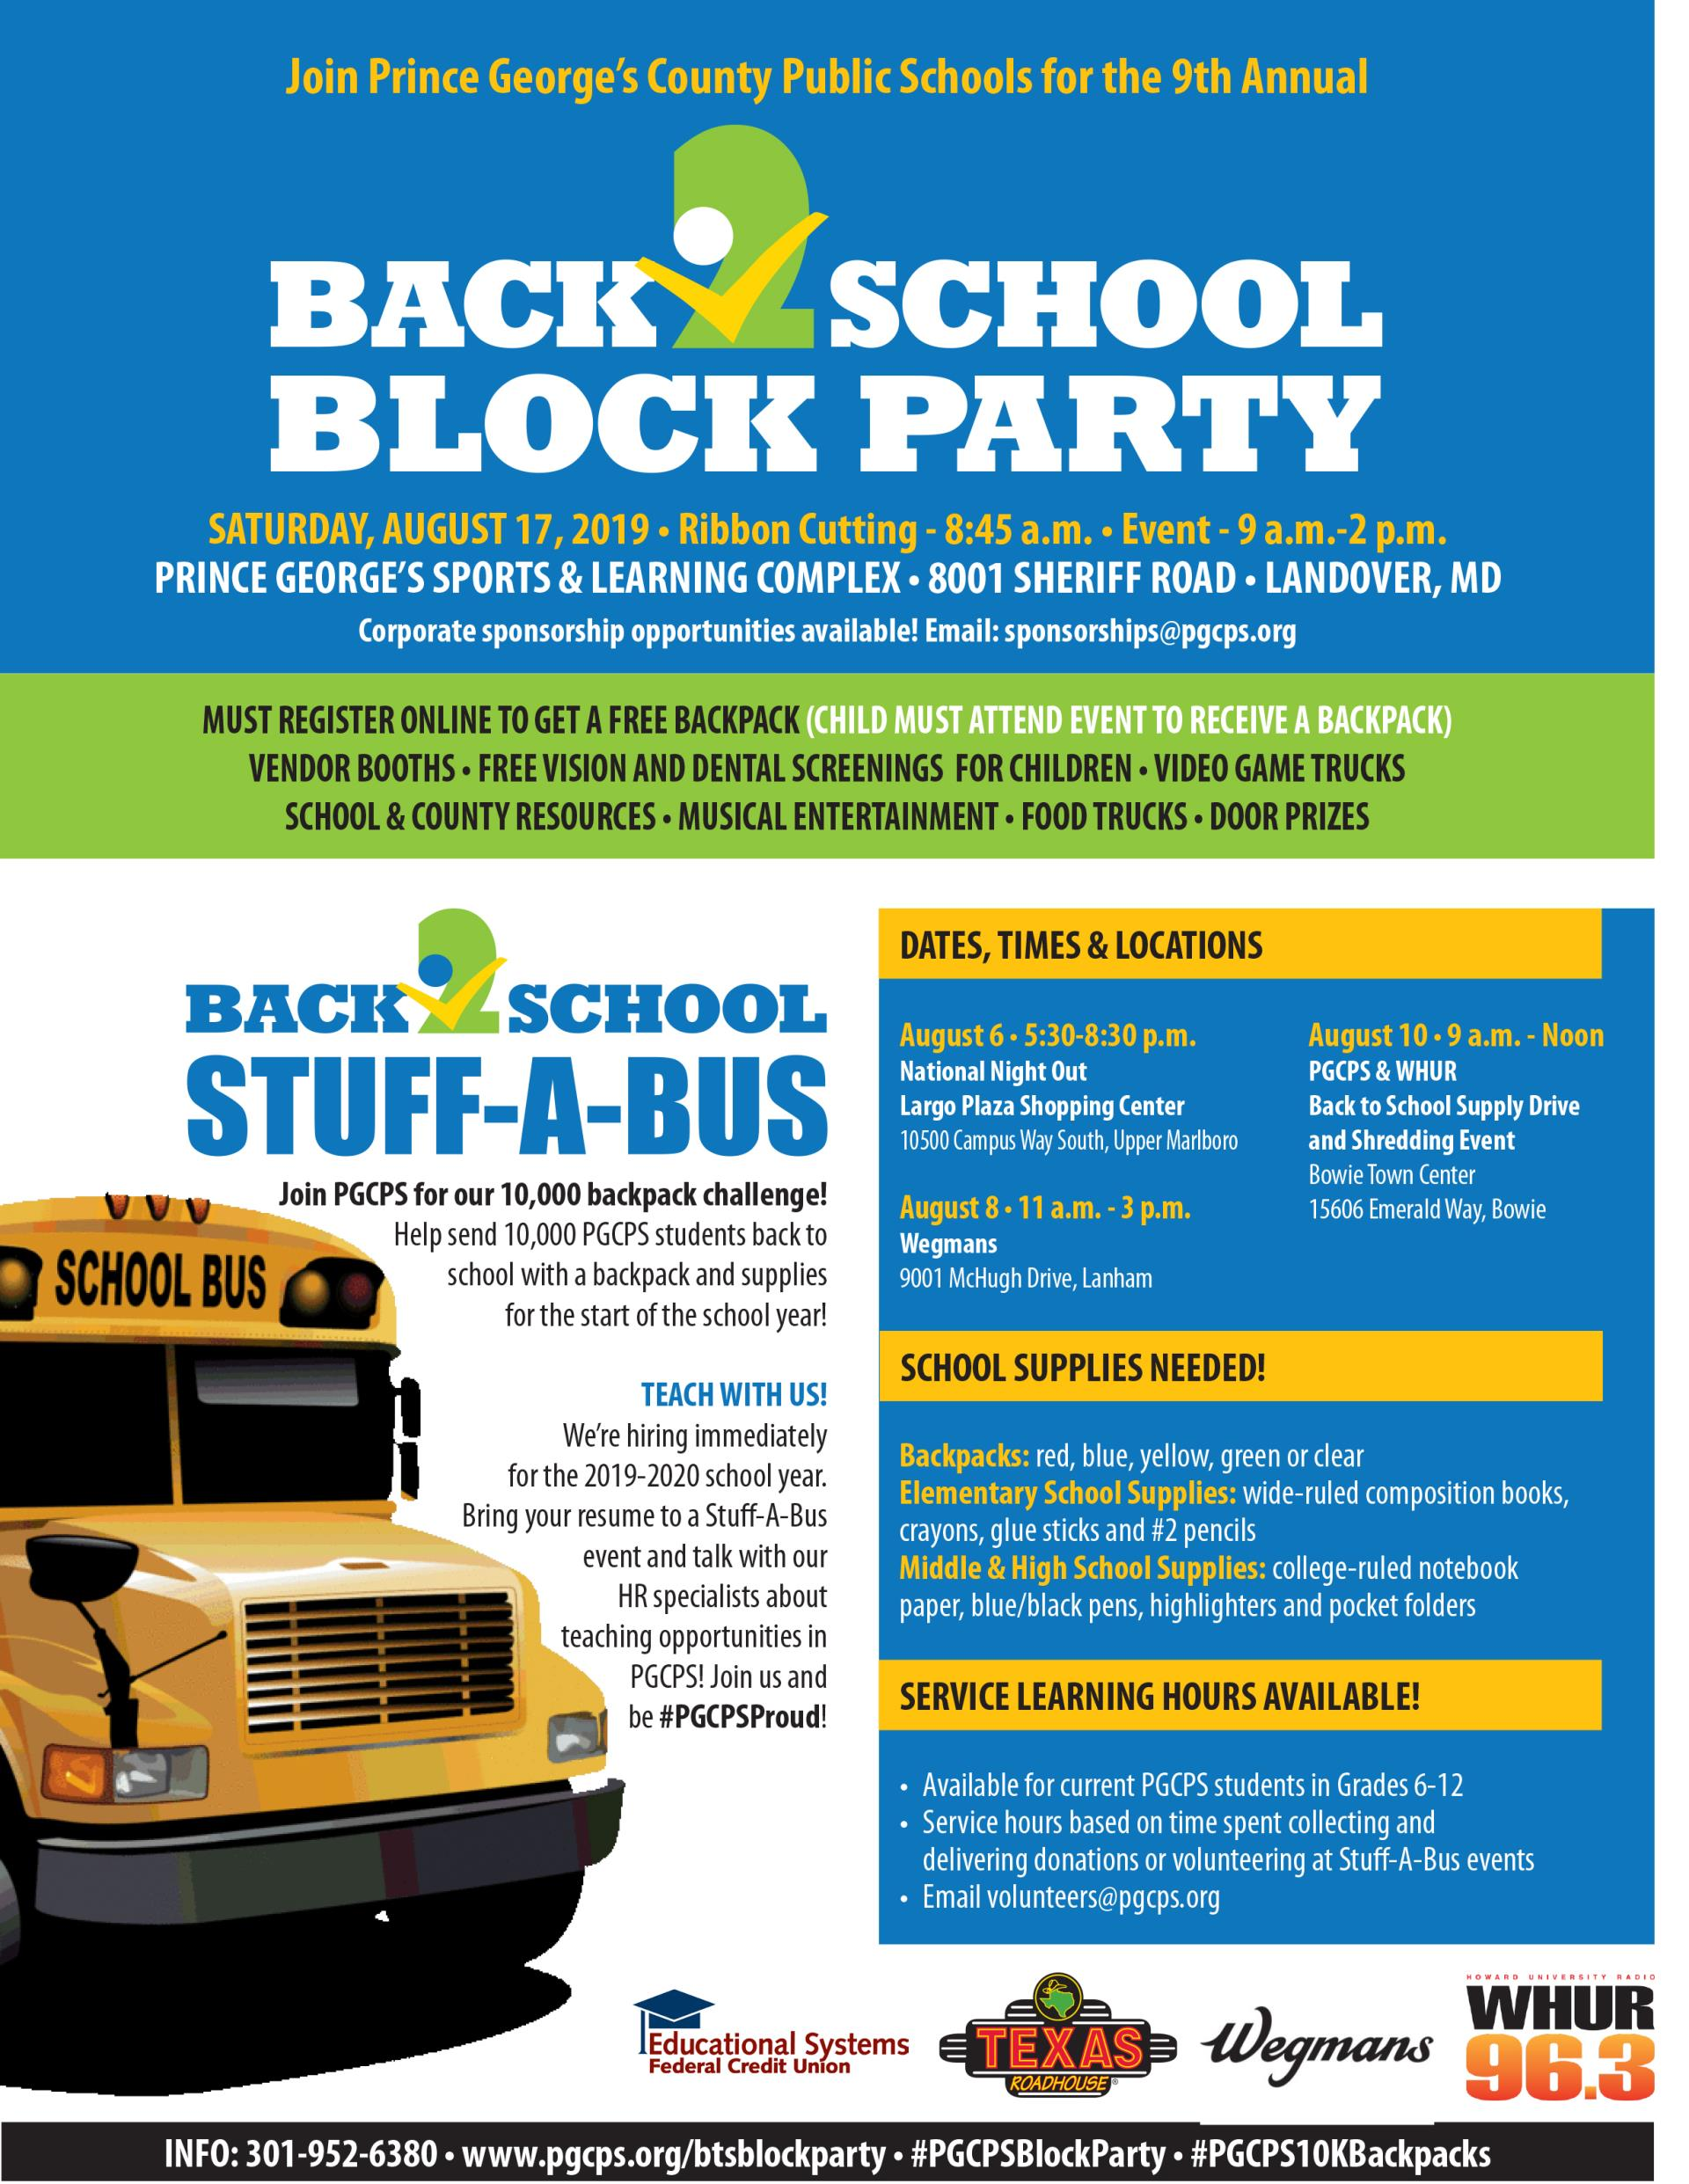 BTS Block Party - Stuff A Bus Flyer 2019 REVISED July 29